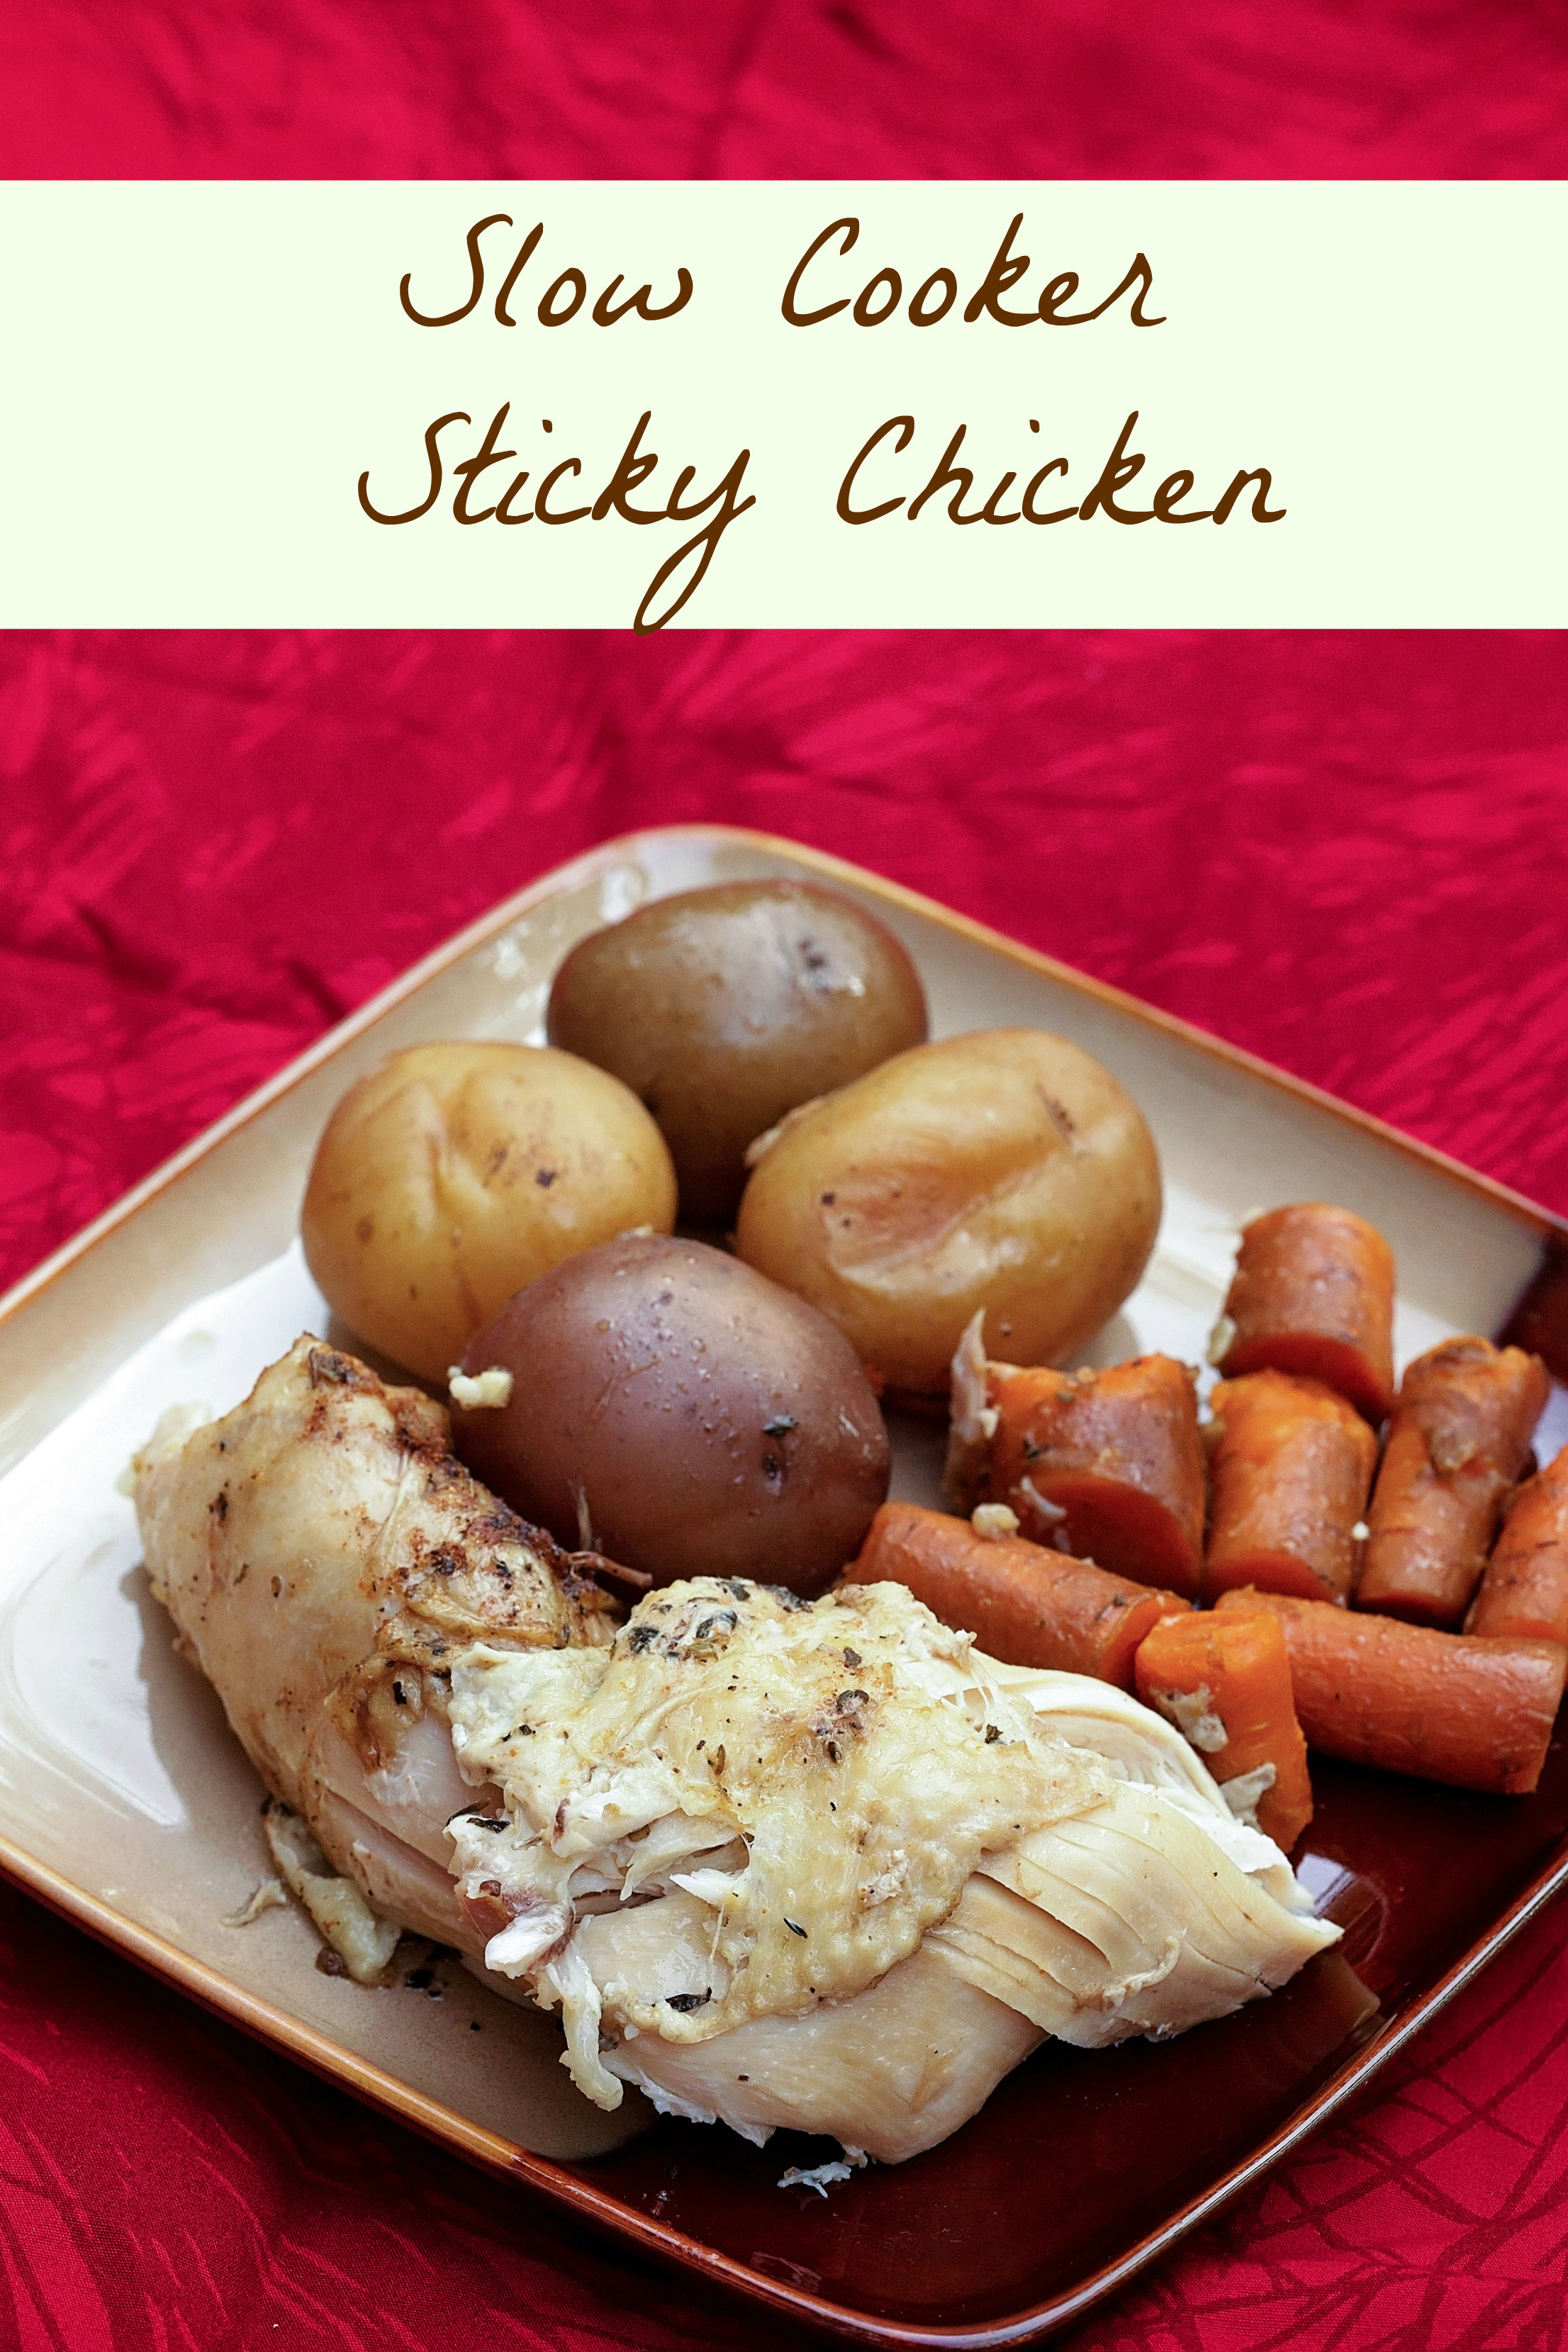 Slow Cooker Low Fat Recipes  Low Fat Slow Cooker Sticky Chicken Recipe SoFabFood